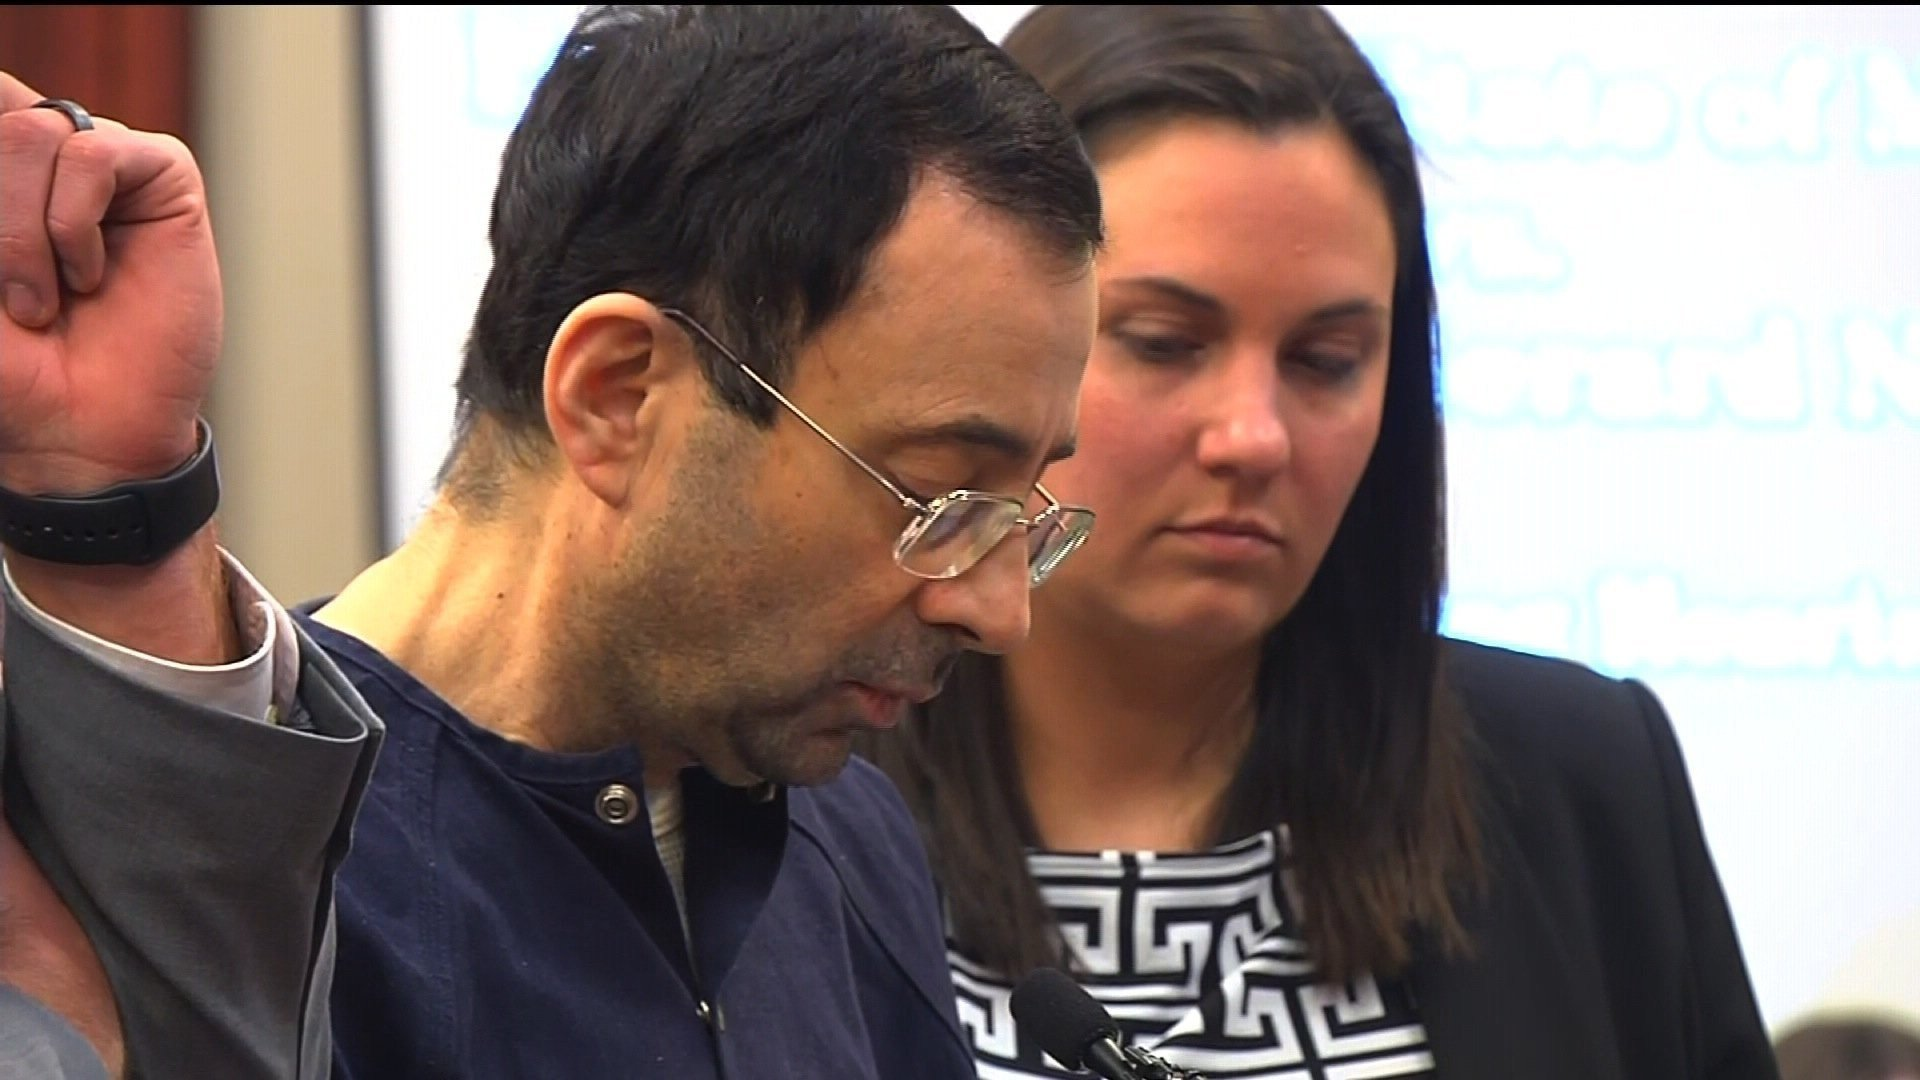 Police will apologize for 'missed' chance to get Nassar